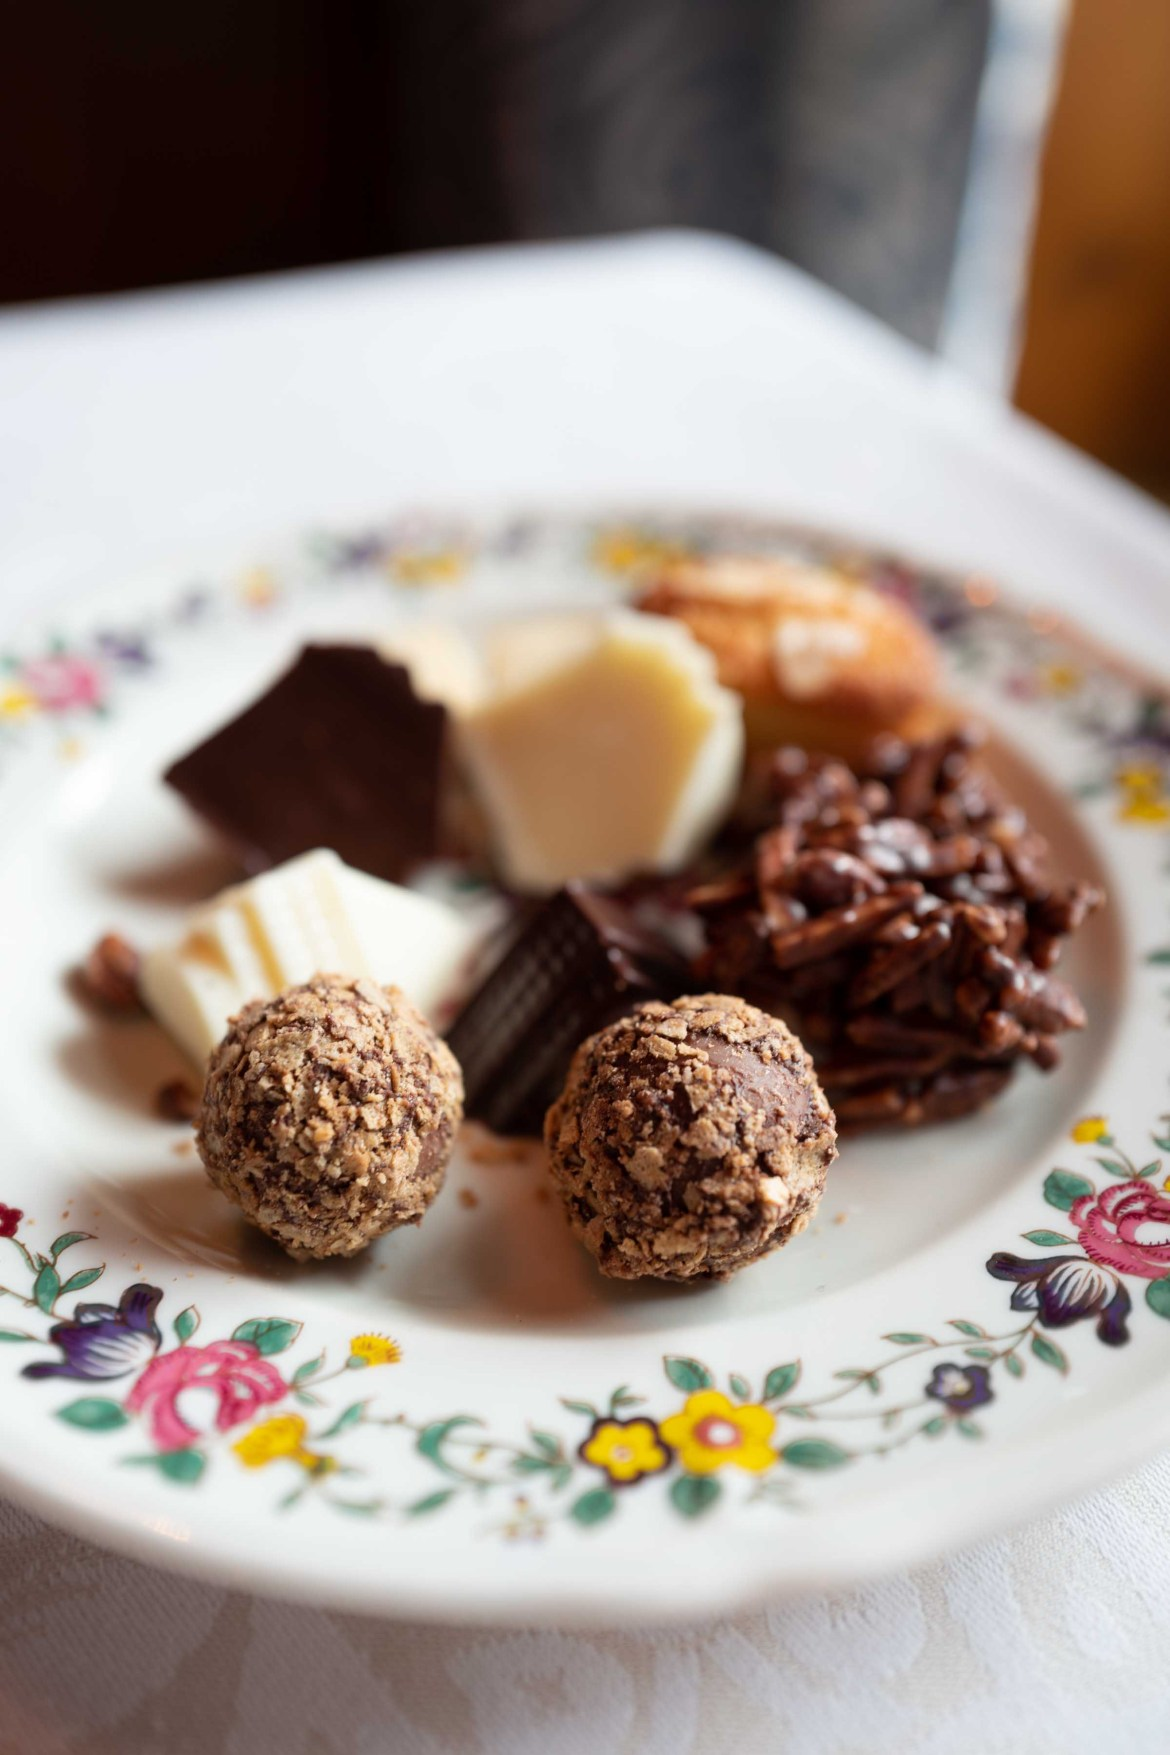 Finish your meal at Chesa Veglia with a delightful plate of chocolates   thetasteedit.com #travel #switzerland #stmoritz